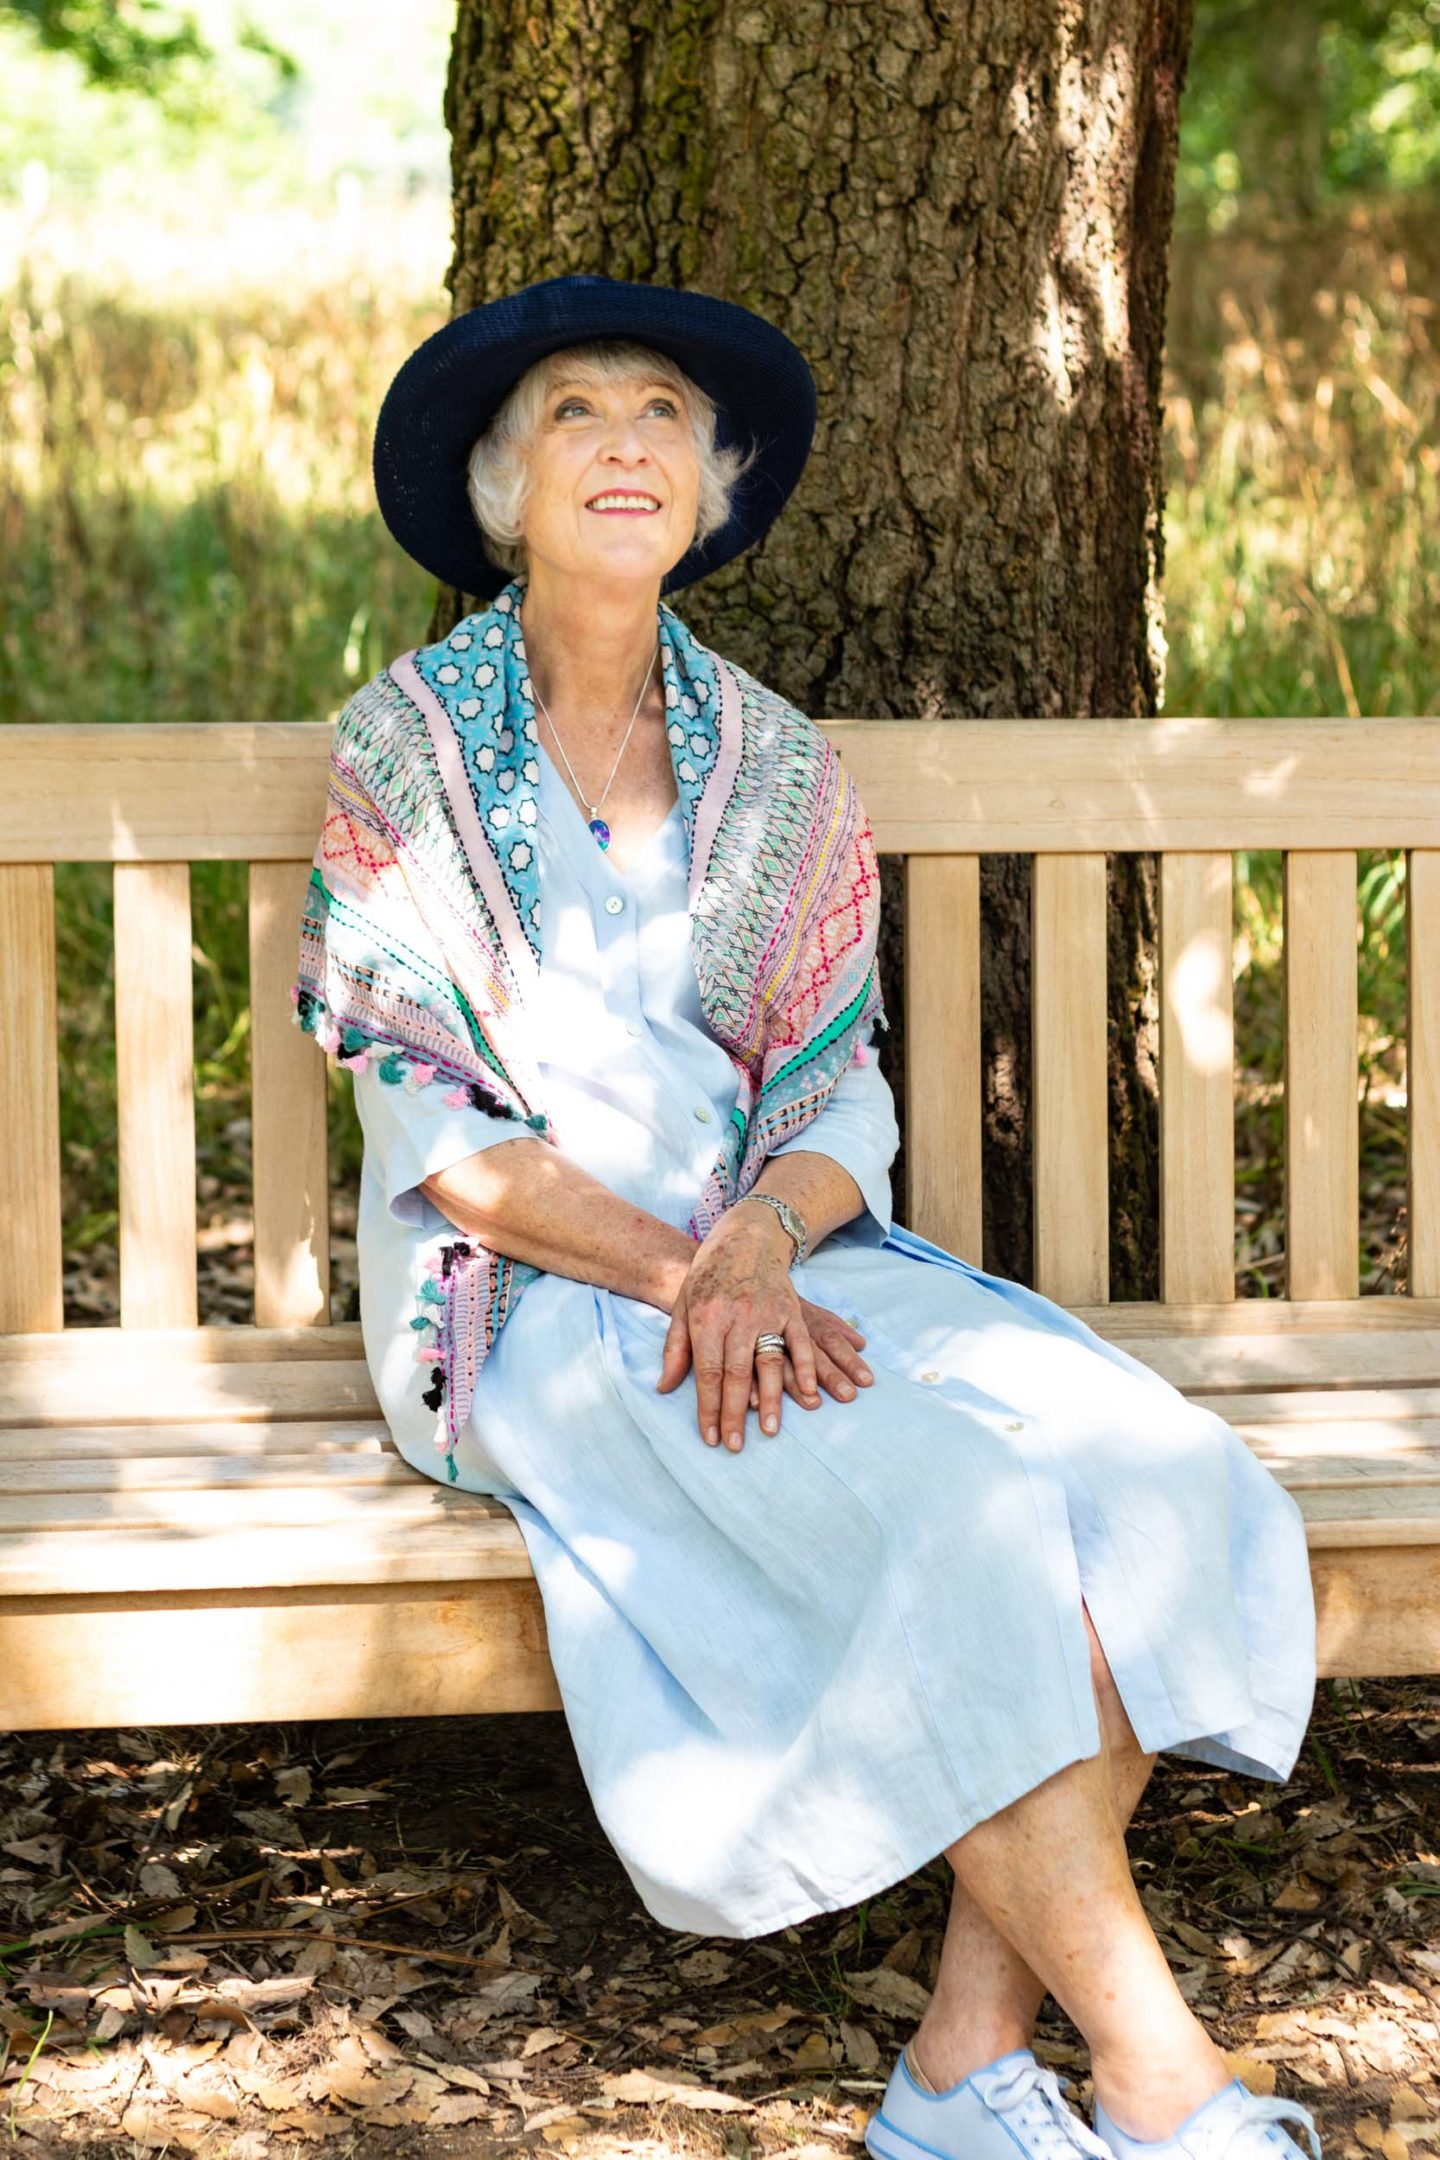 Blue linen dress, scarf and sun hat